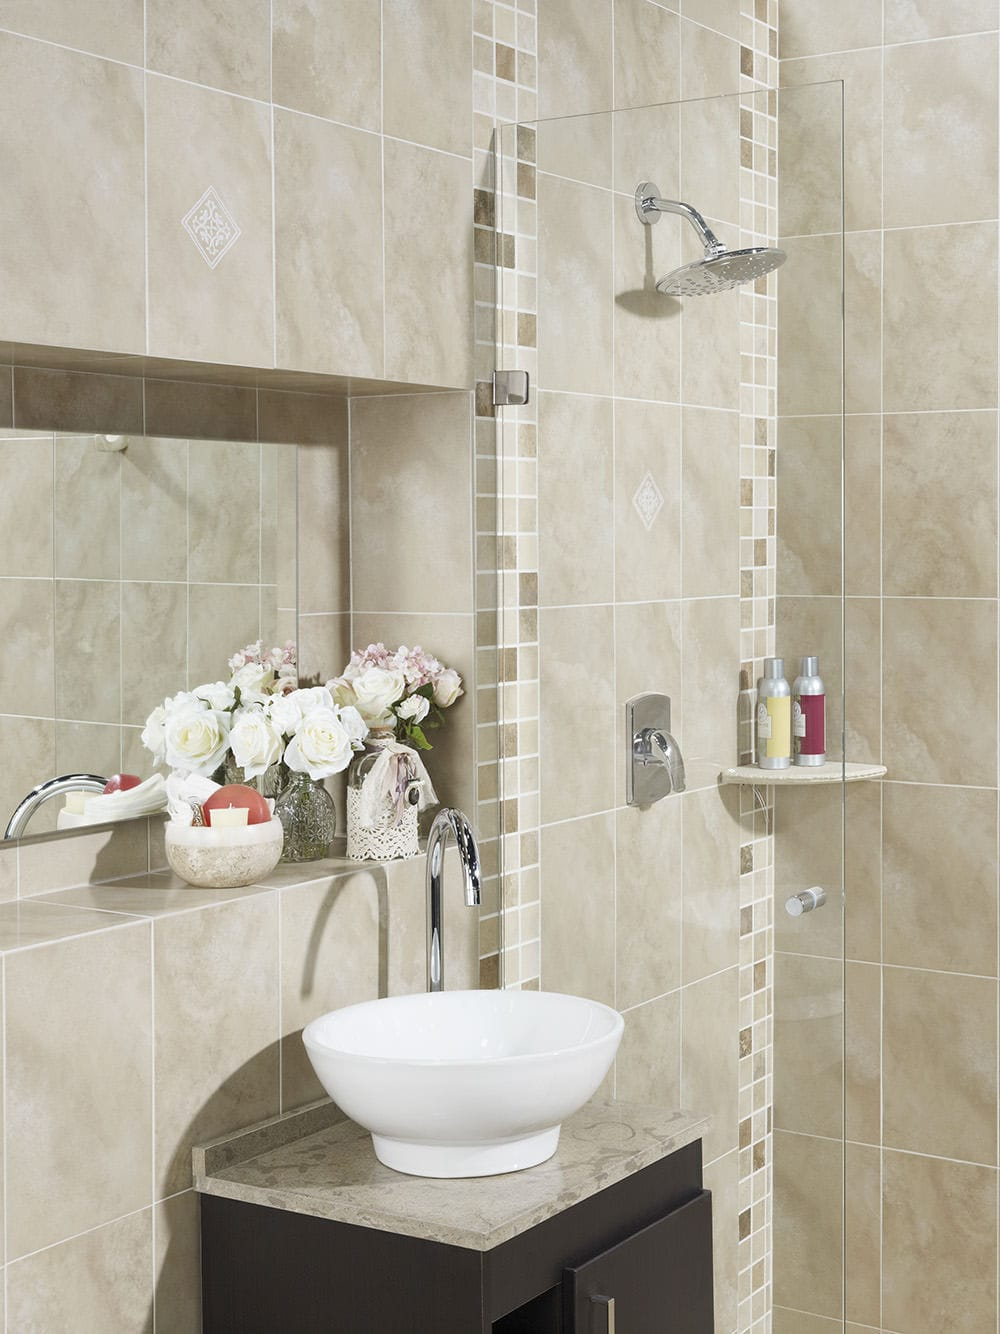 Bathroom tile / kitchen / floor / wall - ALABASTRINO - Alfagres S.A.